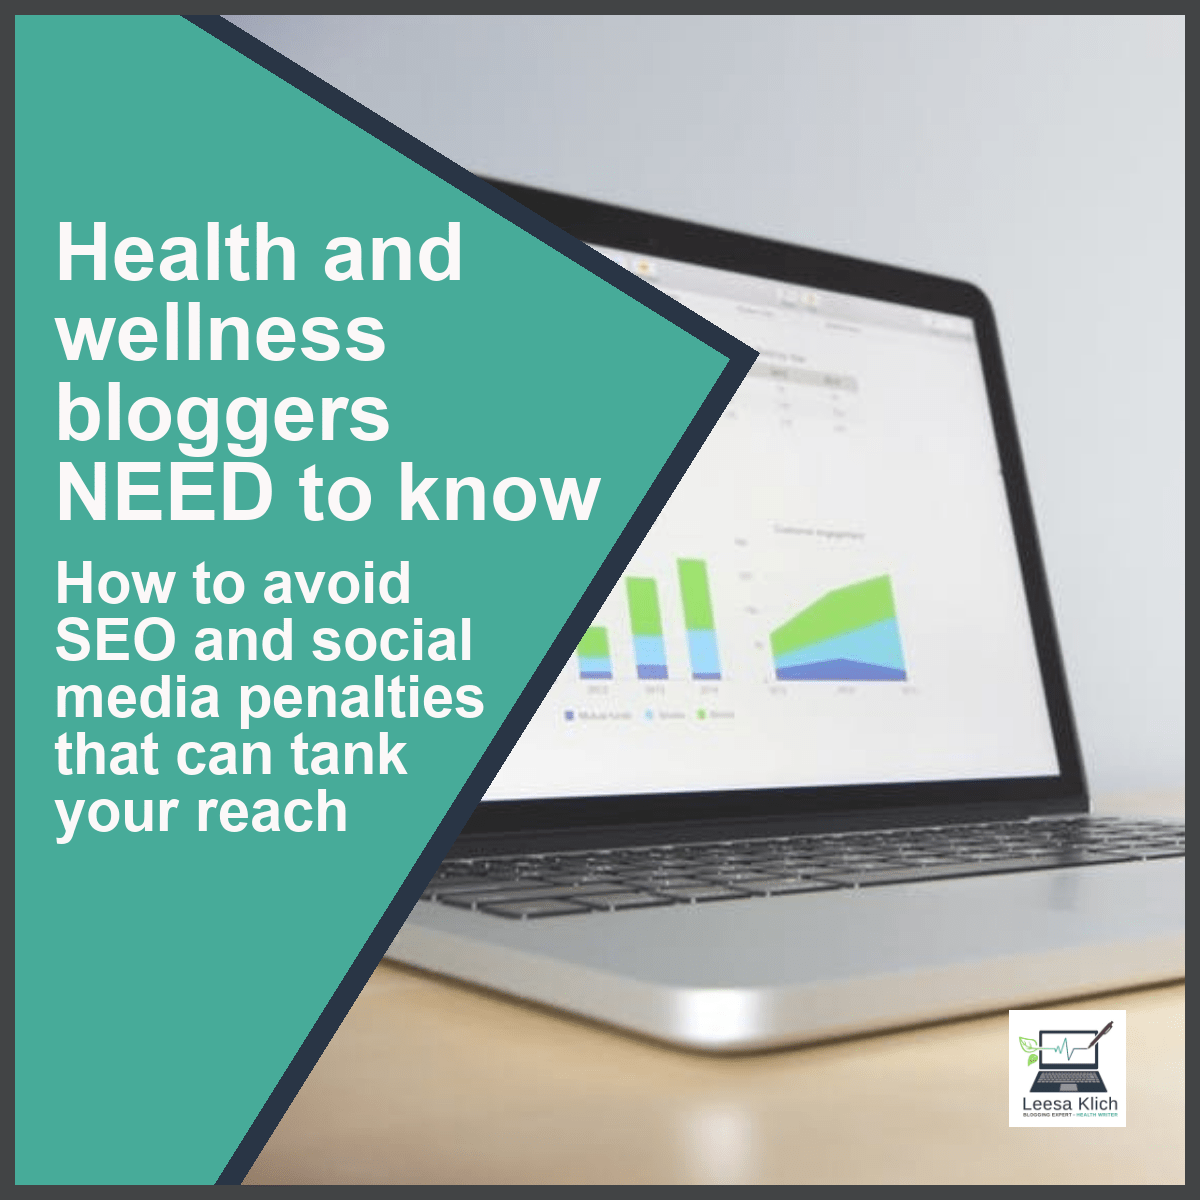 health and wellness bloggers avoid SEO and social media penalties